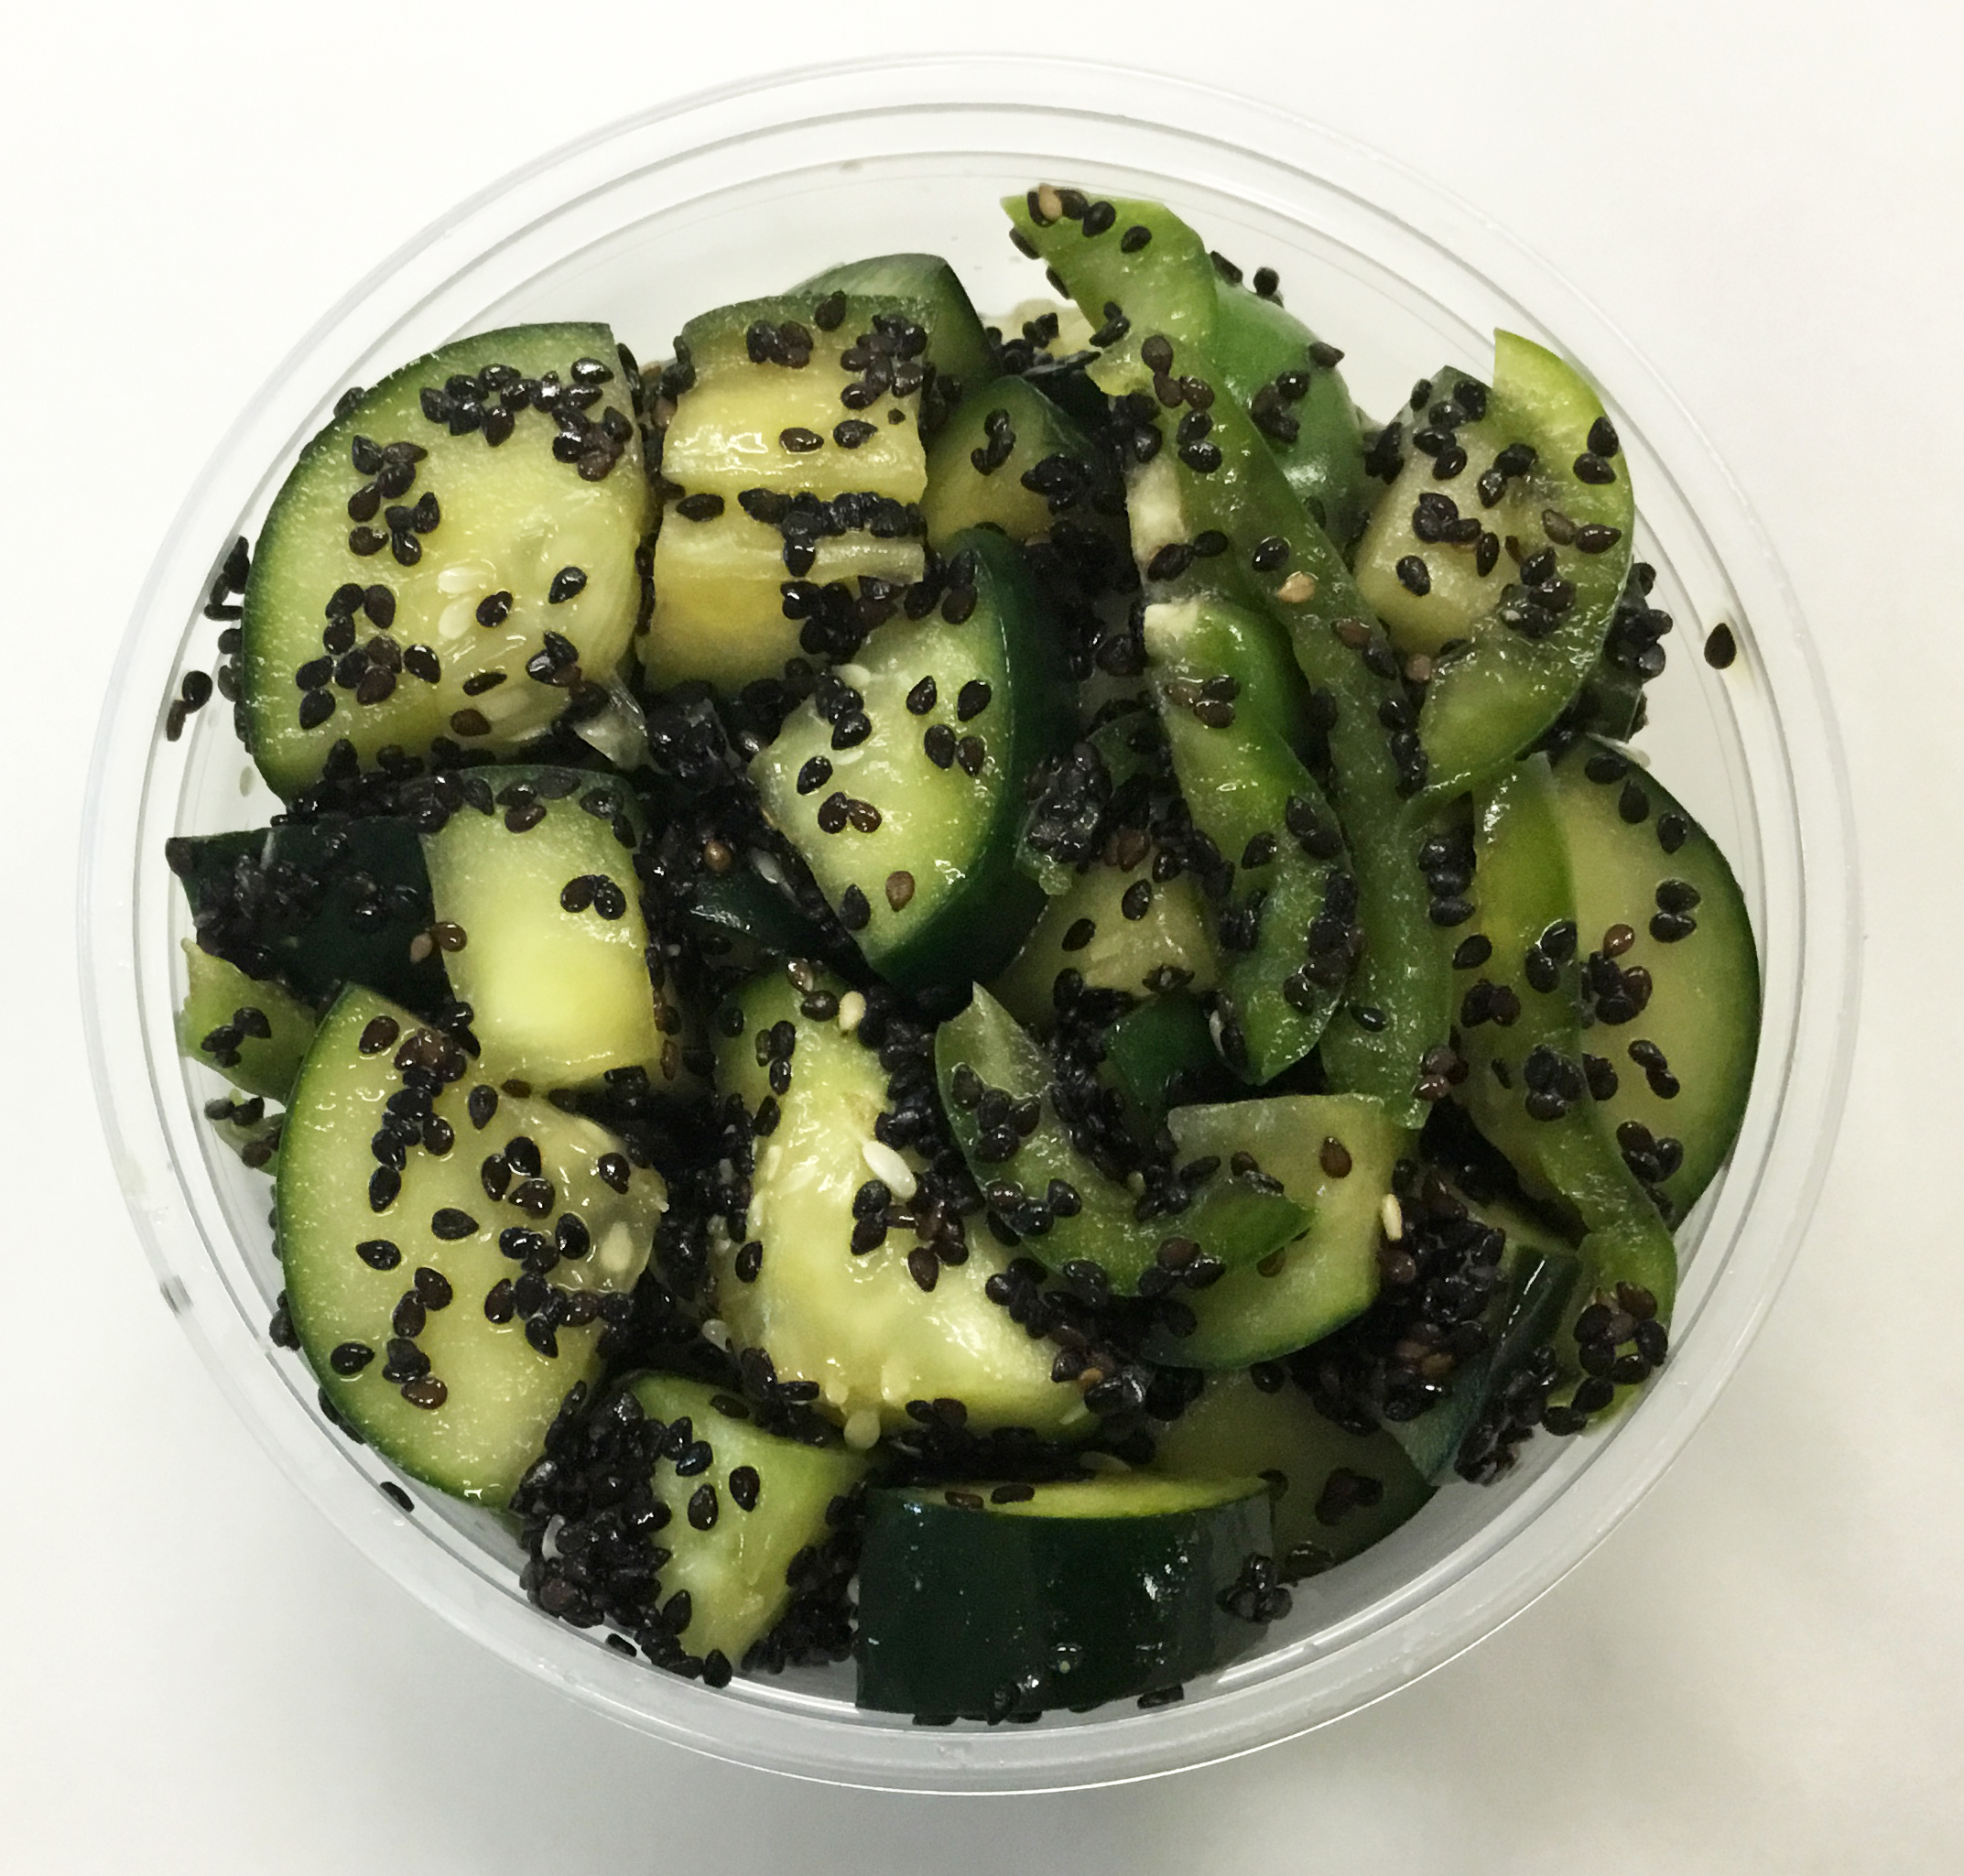 cucumber and black sesame seeds salad, tamari dressing